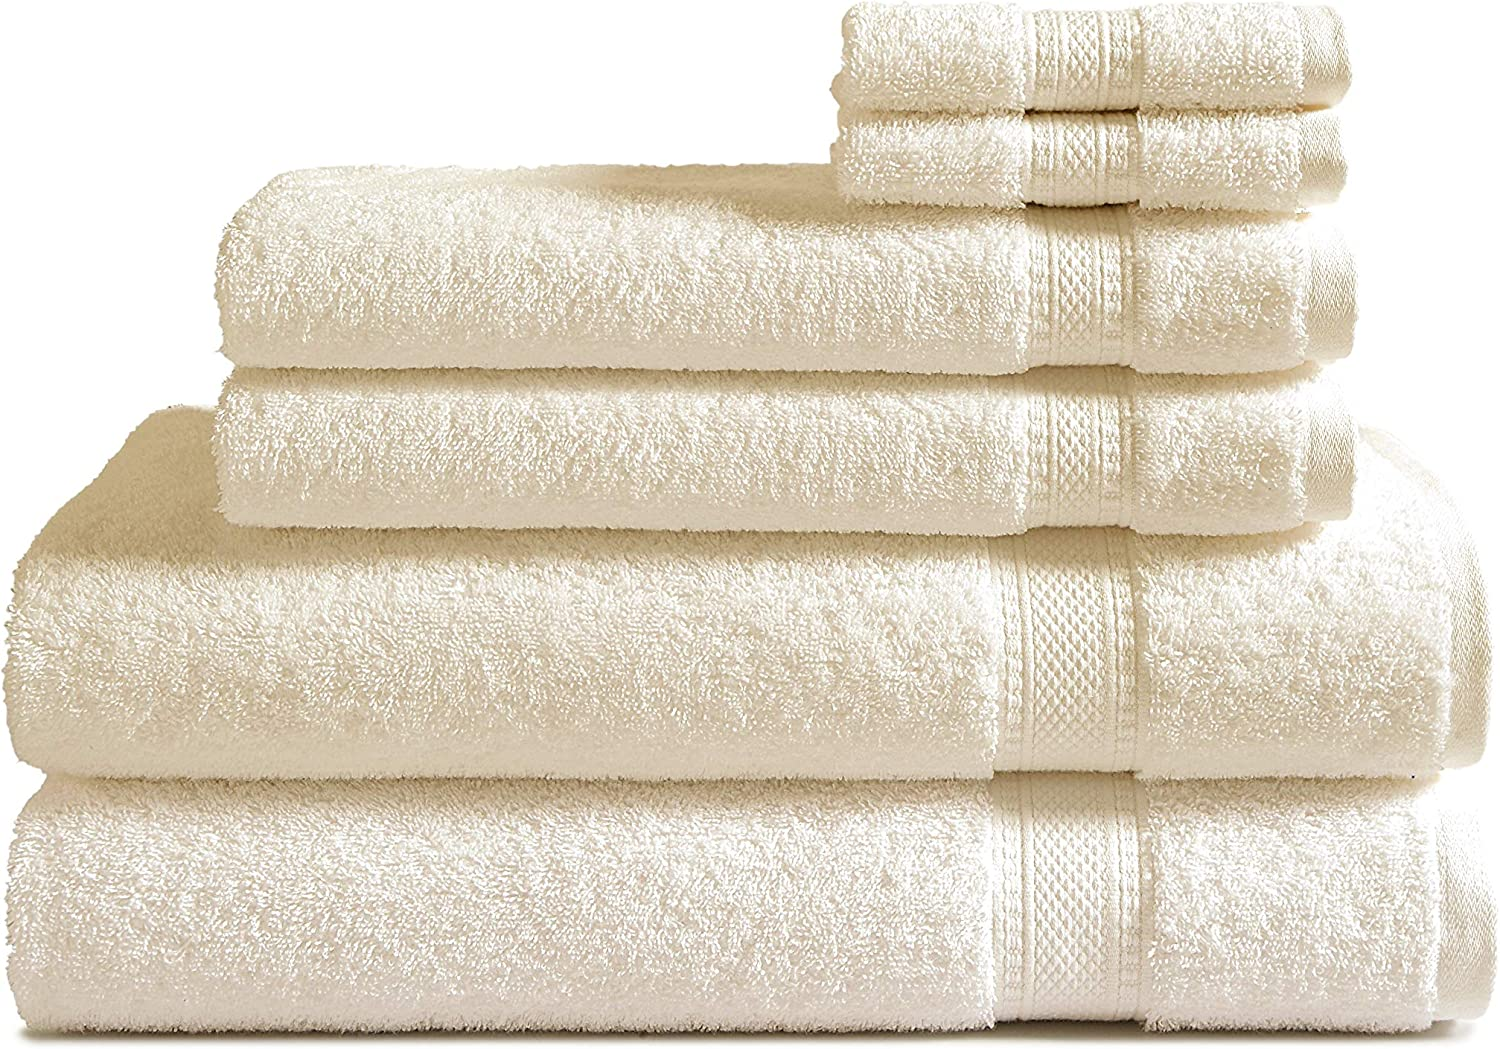 100 Cotton 6 Piece Towel Set Ivory 500 Gsm 2 Bath Towels 2 Hand Towels And 2 Washcloths Classic Amercian Construction Soft Highly Absorbent Machine Washable Kitchen Dining